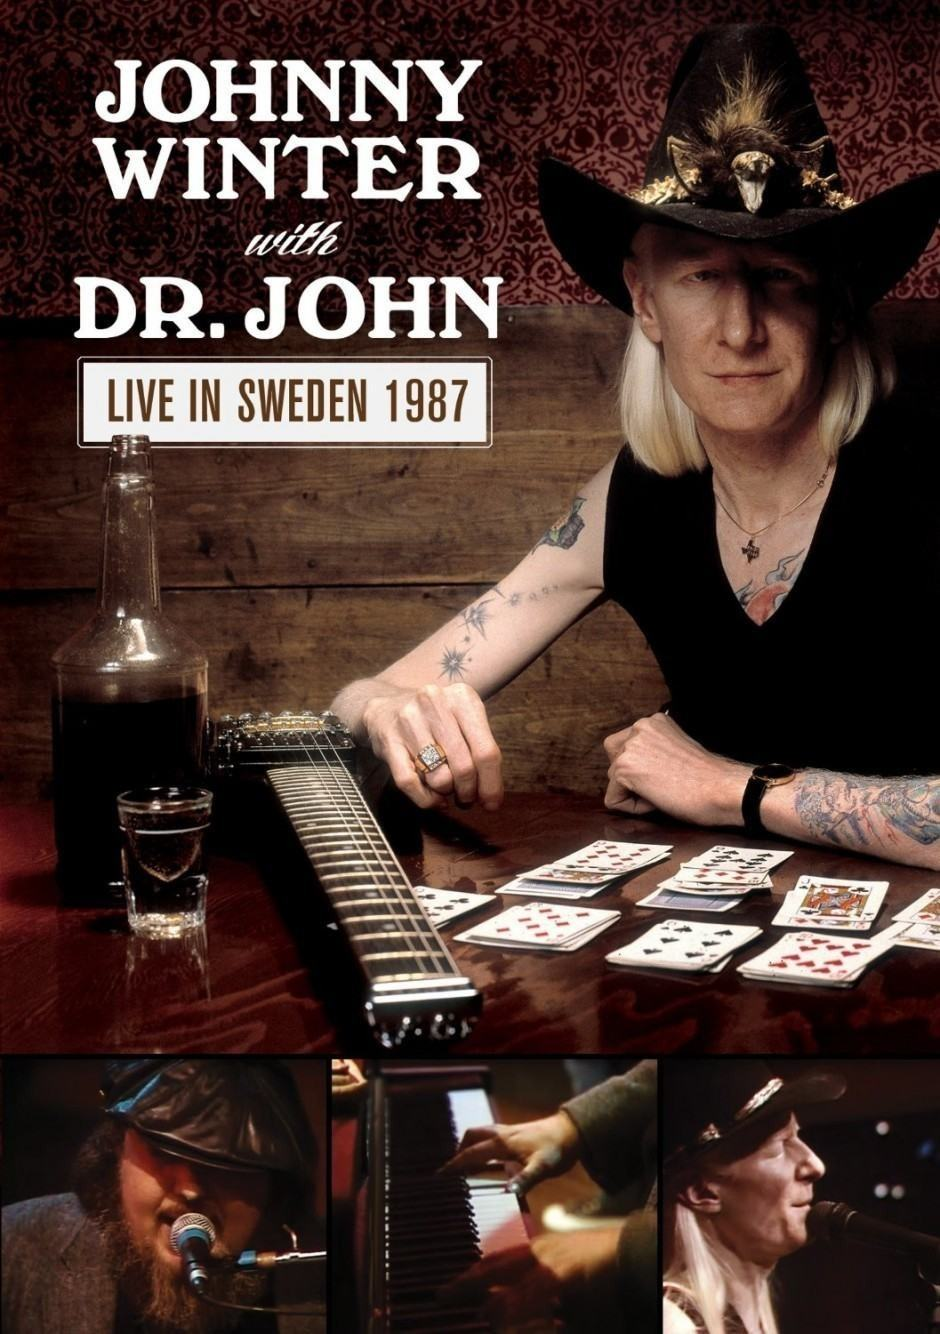 Johnny Winter & Dr. John – Live in Sweden 1987